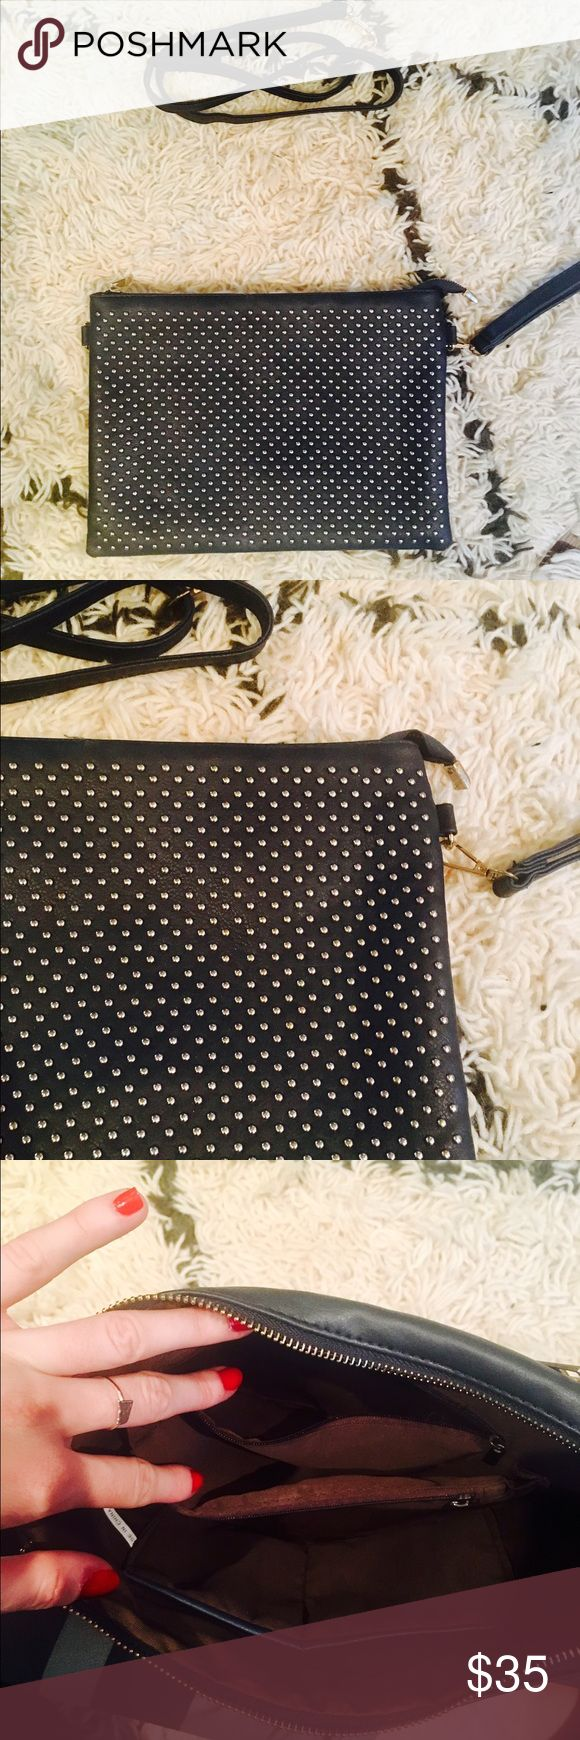 Studded Navy Clutch Gently used navy clutch with fun round studs. I used this bag for a wedding this summer and unfortunately one of the studs came off at some point -- as shown in photos. Despite the minor defect, this bag is excellent! Tons of pockets and a removable cross body strap included!! Bags Clutches & Wristlets